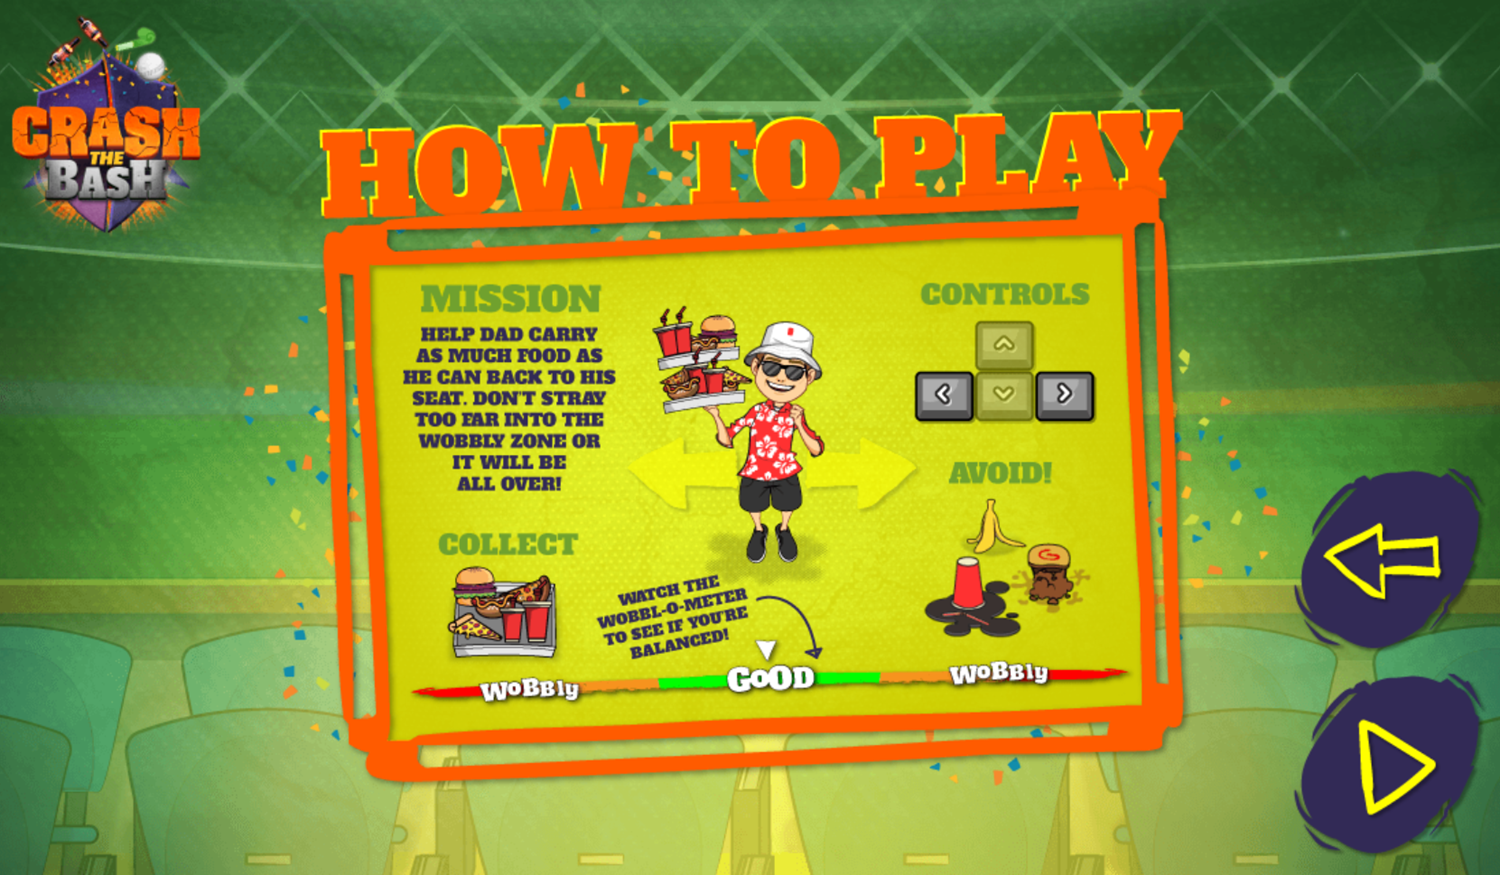 Crash the Bash Wobbly Dad Game How To Play Screenshot.